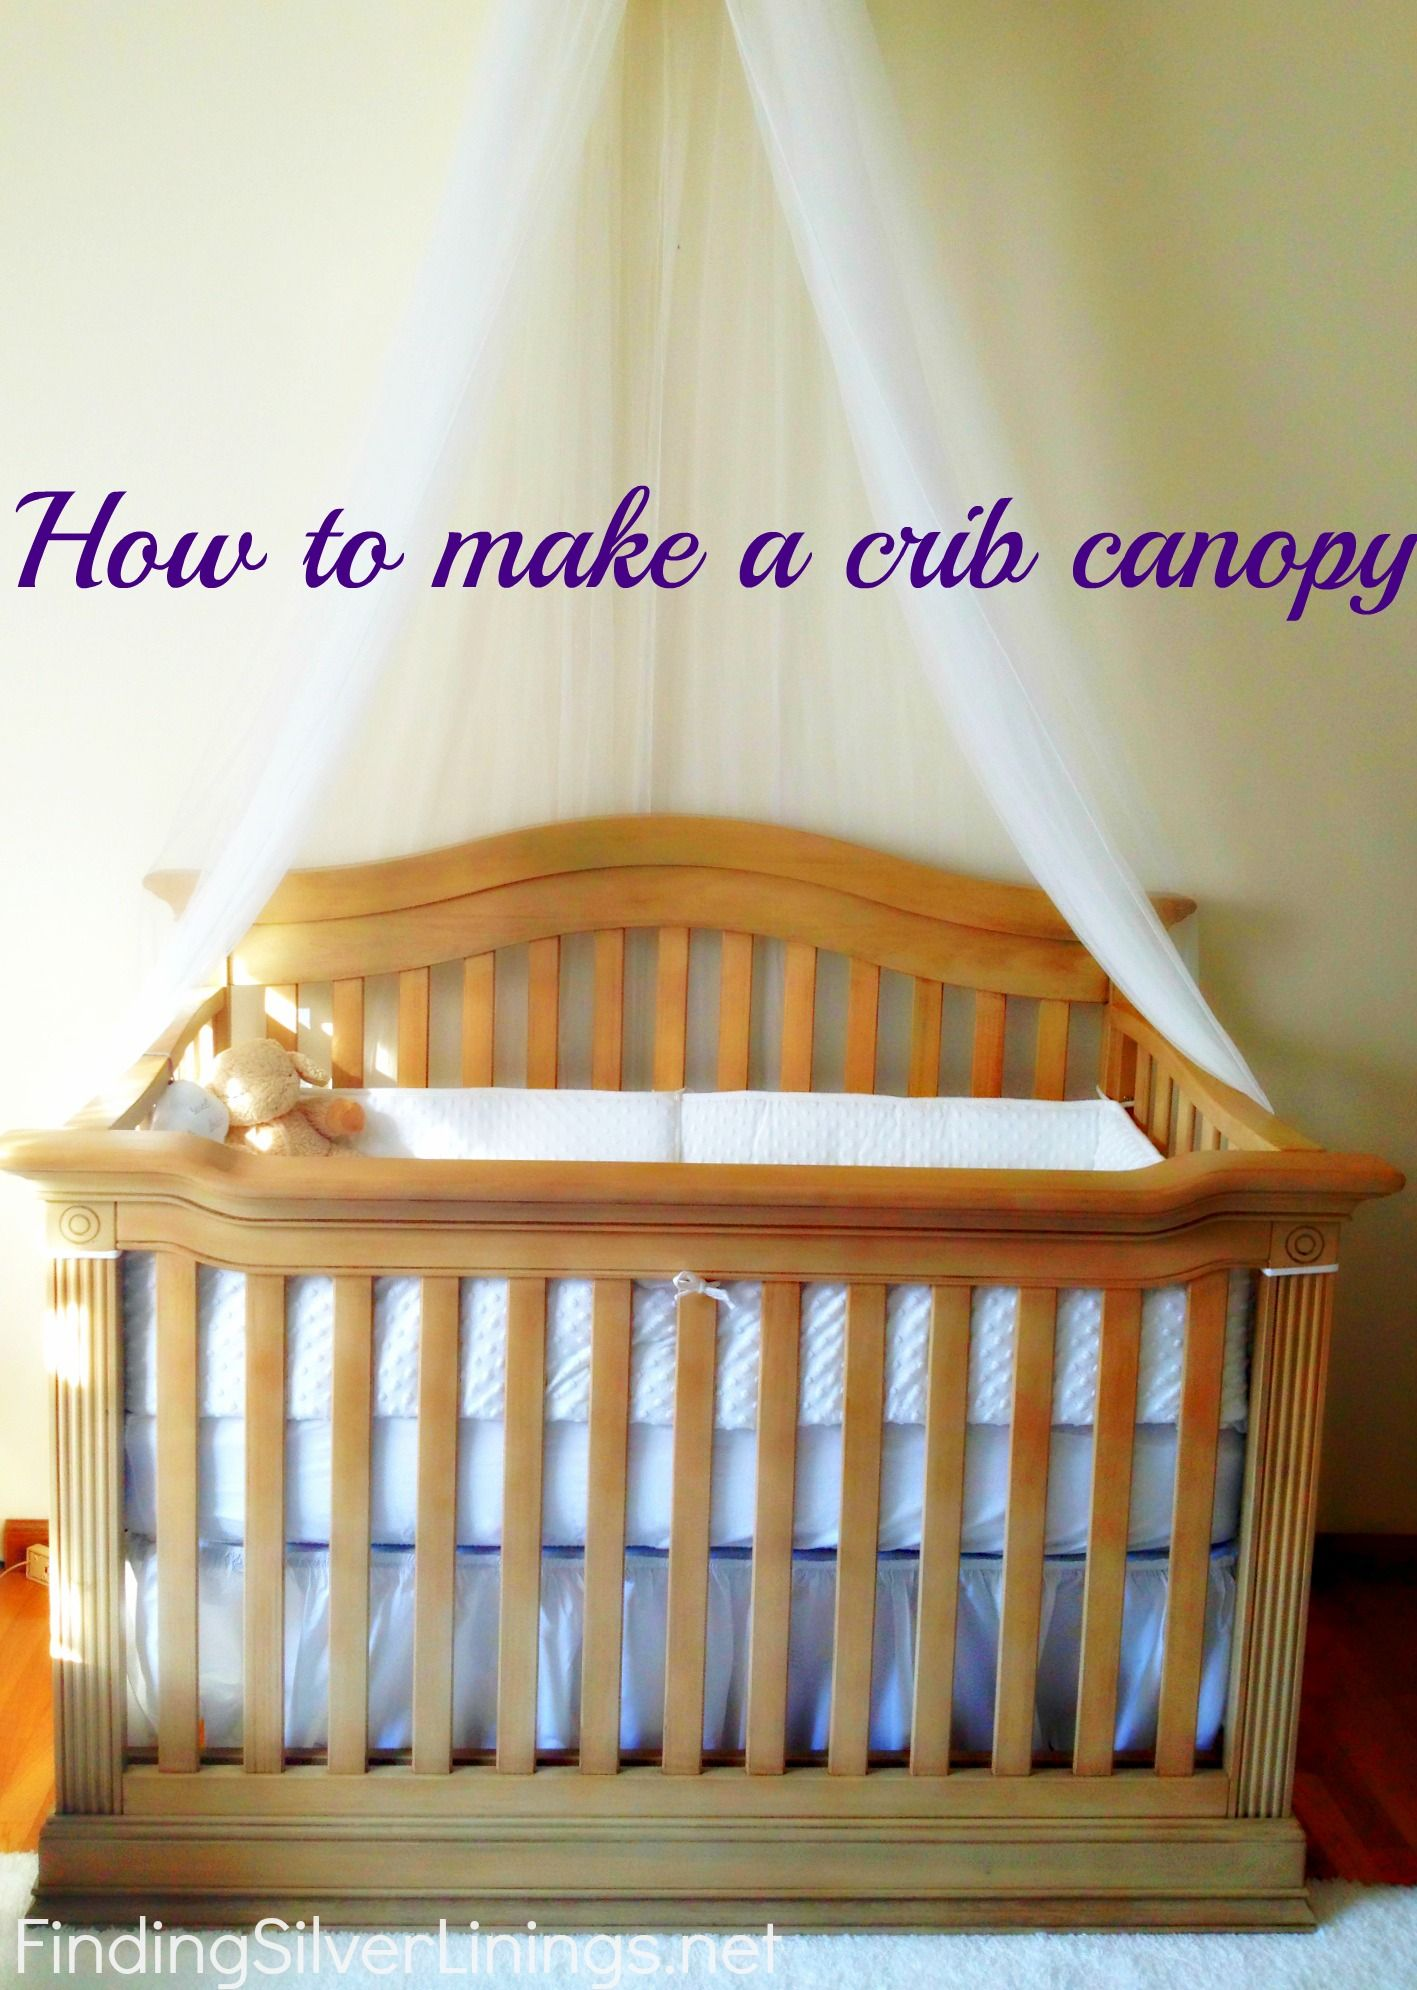 Crib Canopy Diy This Mama Puts One Together For Around 13 My Kinda Project